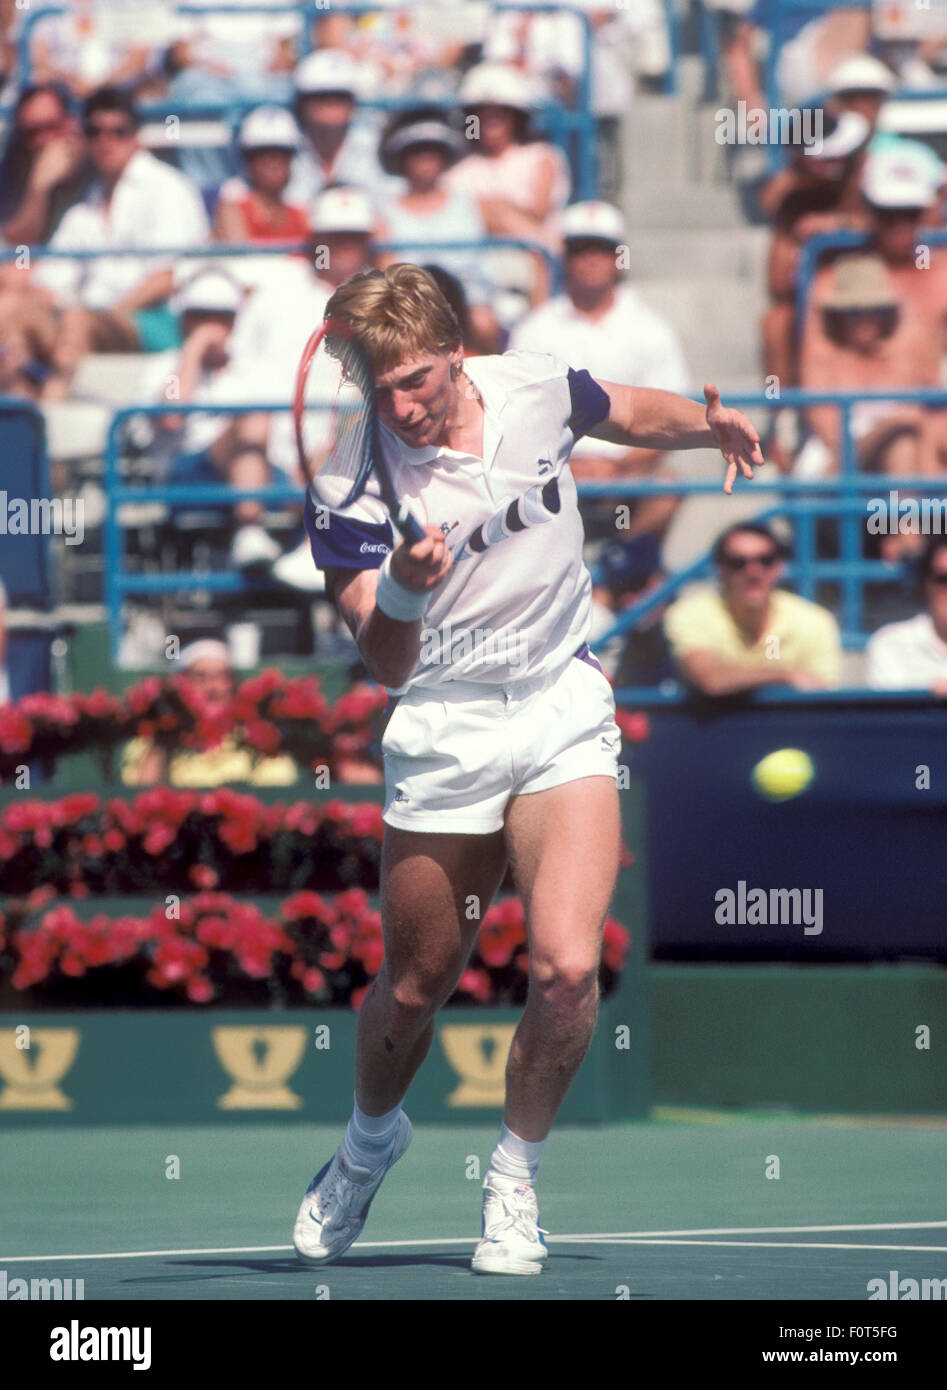 fac9e56f411c Boris Becker in action at the Newsweek Champions Cup tournament in Indian  Wells